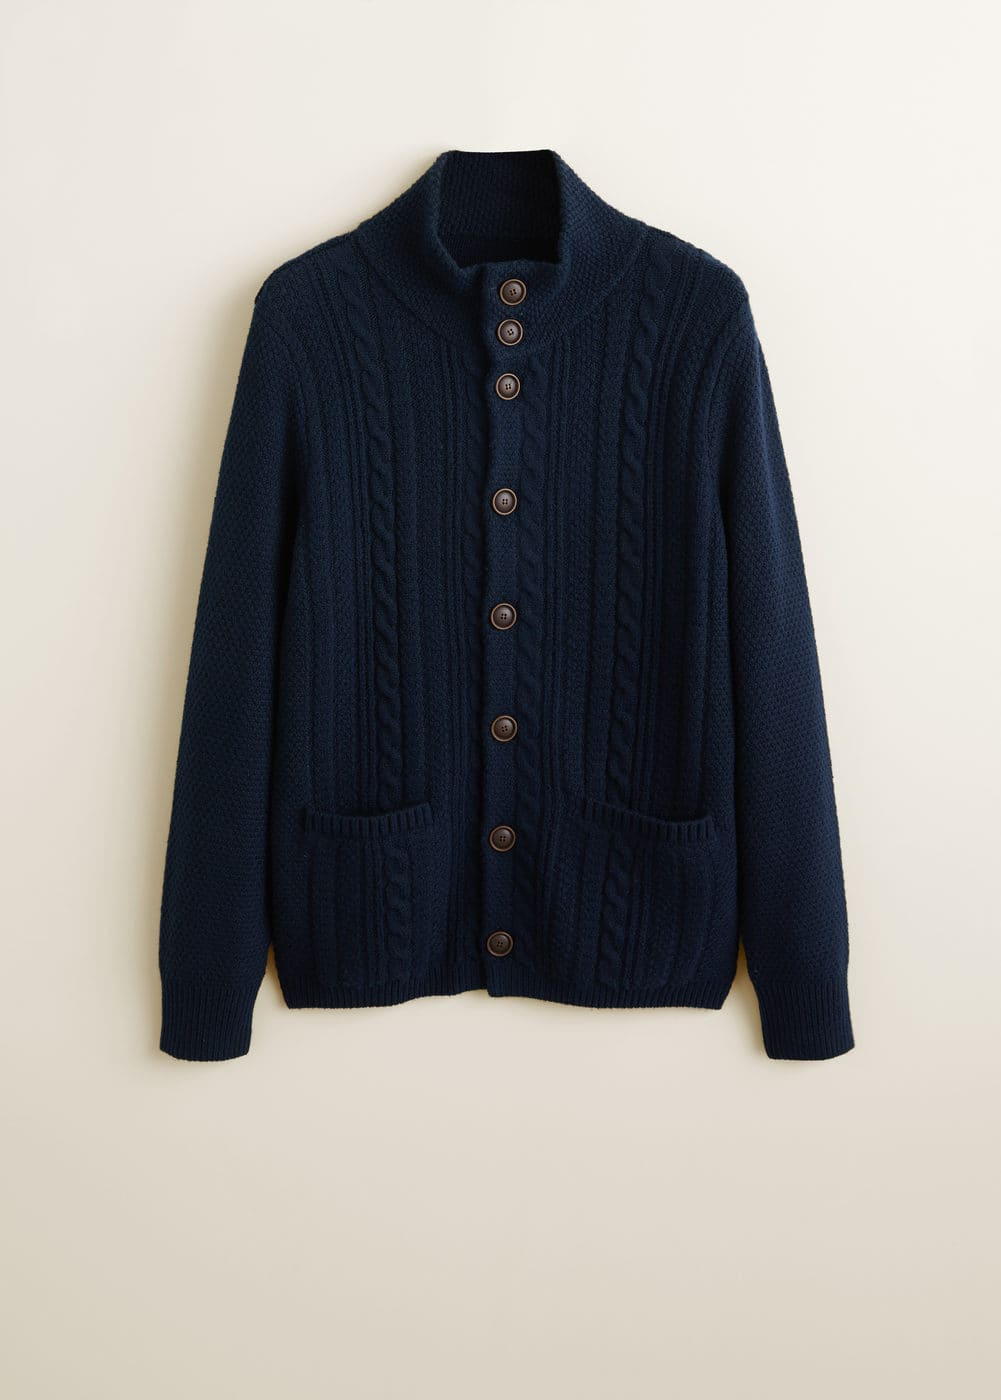 Mango - Buttoned knit braided cardigan - 6